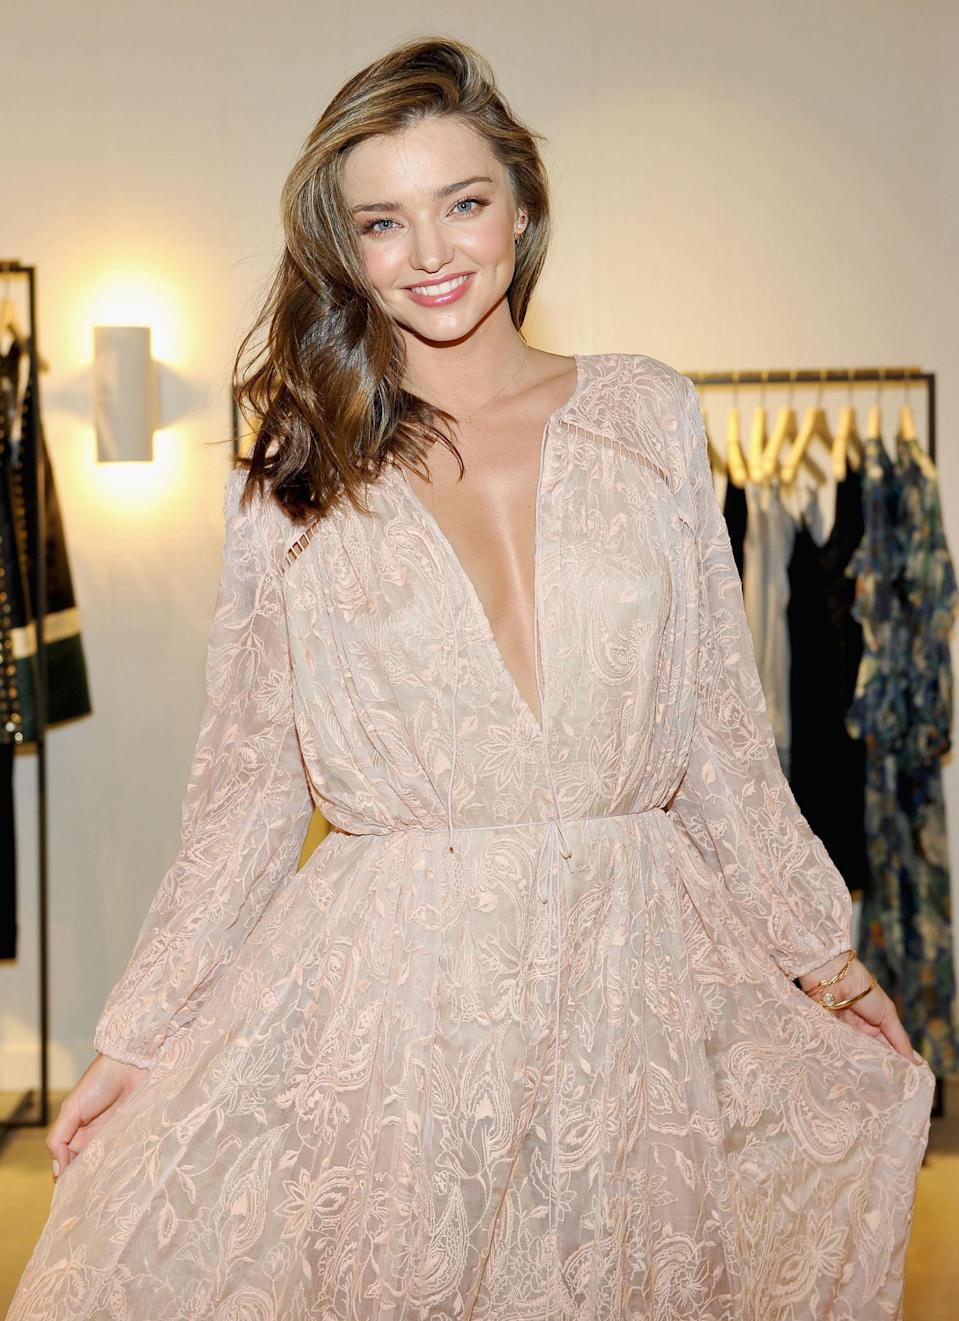 """<p>The only celebrated Australian beauty known in Britain not to have once had a part on <em>Neighbours</em>, Miranda Kerr became at model at 13 and has never looked back, becoming one of the most bankable faces in the world for beauty companies, fashion labels and magazines looking to sell copies including, in 2013, <a href=""""http://www.esquire.co.uk/women/news/a193/women-we-love-miranda-kerr/"""" rel=""""nofollow noopener"""" target=""""_blank"""" data-ylk=""""slk:us"""" class=""""link rapid-noclick-resp"""">us</a>.</p>"""